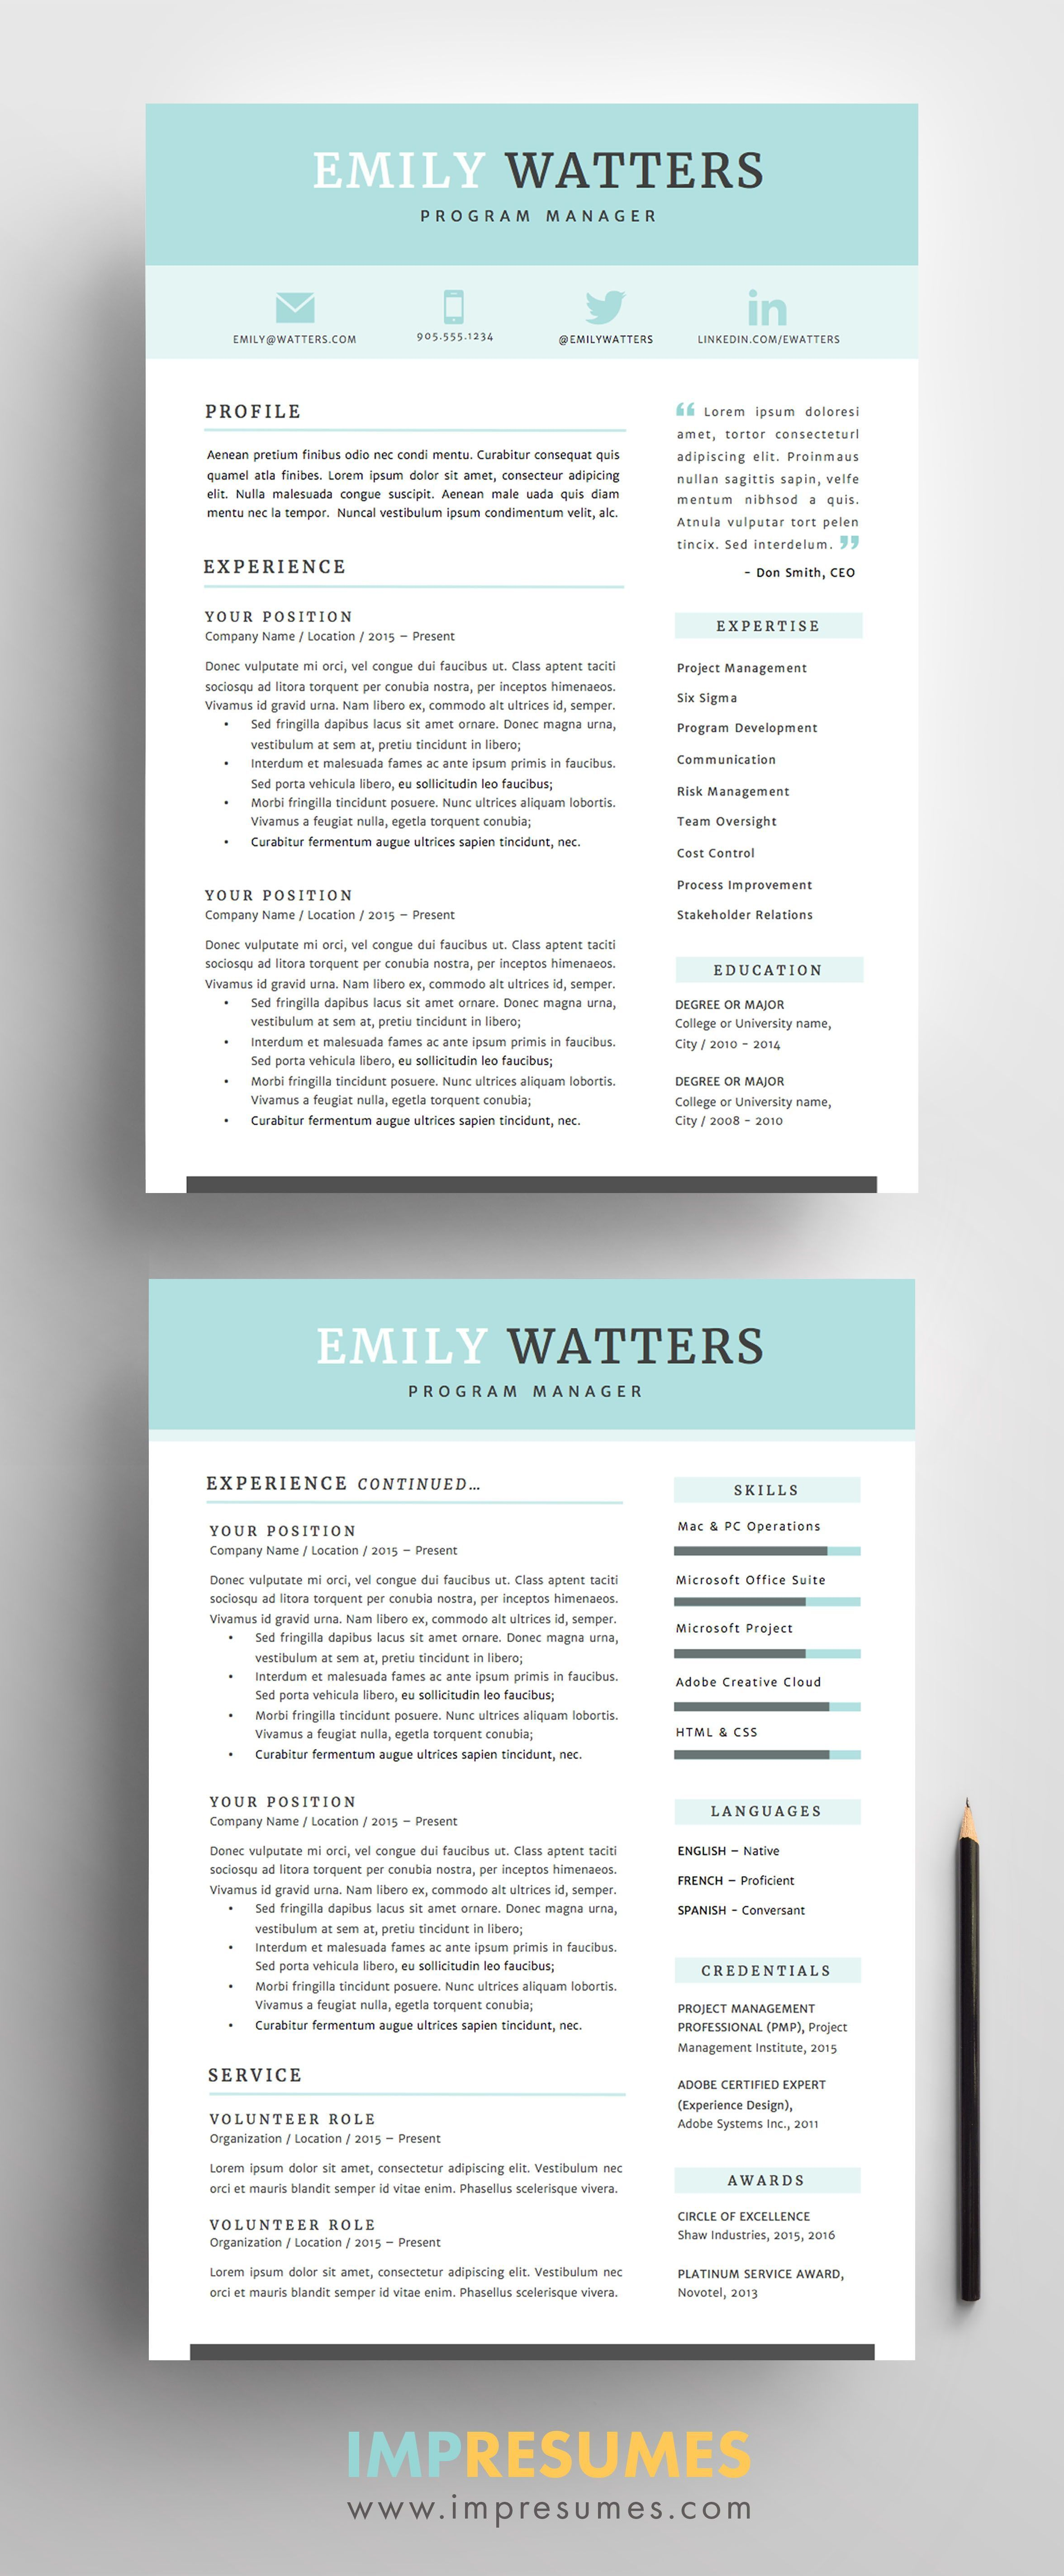 Speed Up Your Job Hunt With A New Professional Resume And Cover Letter Template Perfect Resume Layo Mise En Page Cv Chef De Projet Cv Cv Lettre De Motivation